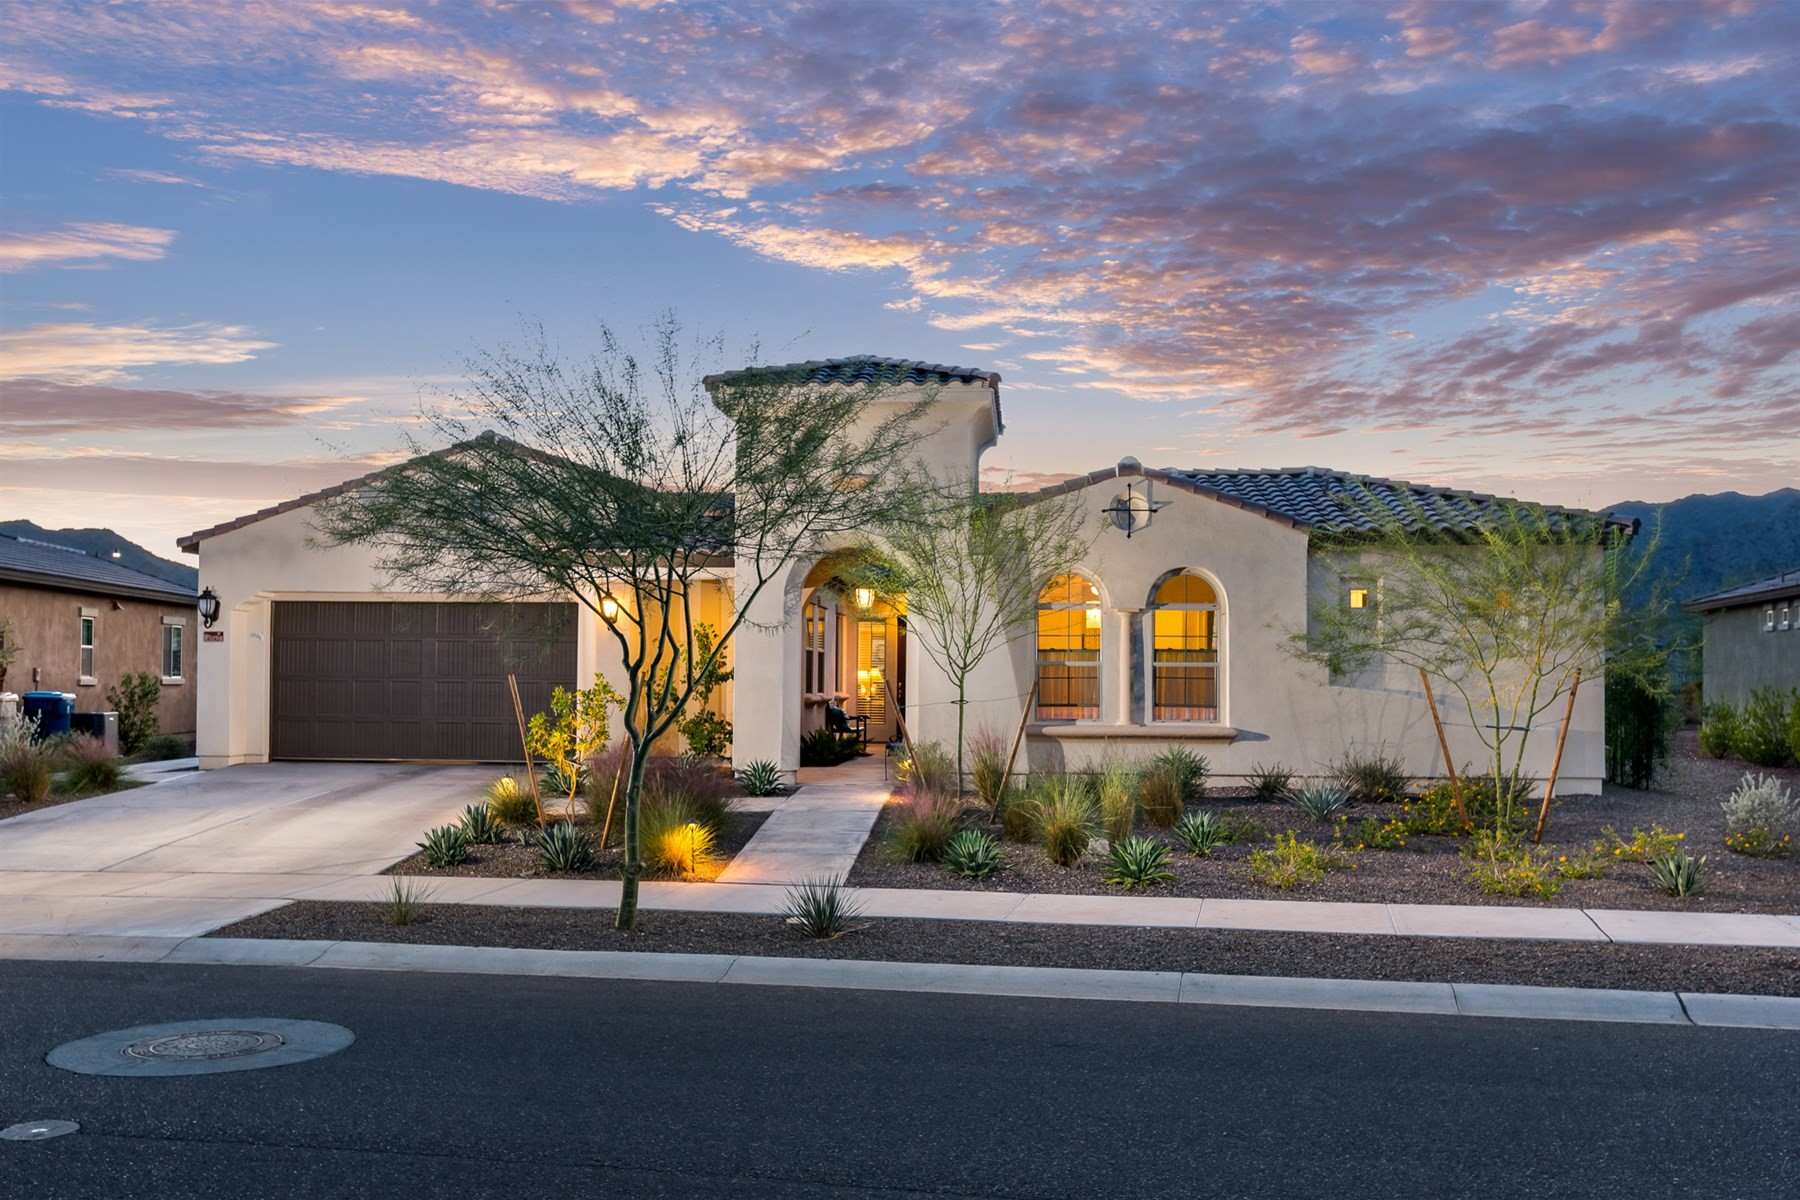 Single Family Homes for Active at Victory at Verrado 4742 N 210TH AVE Buckeye, Arizona 85396 United States